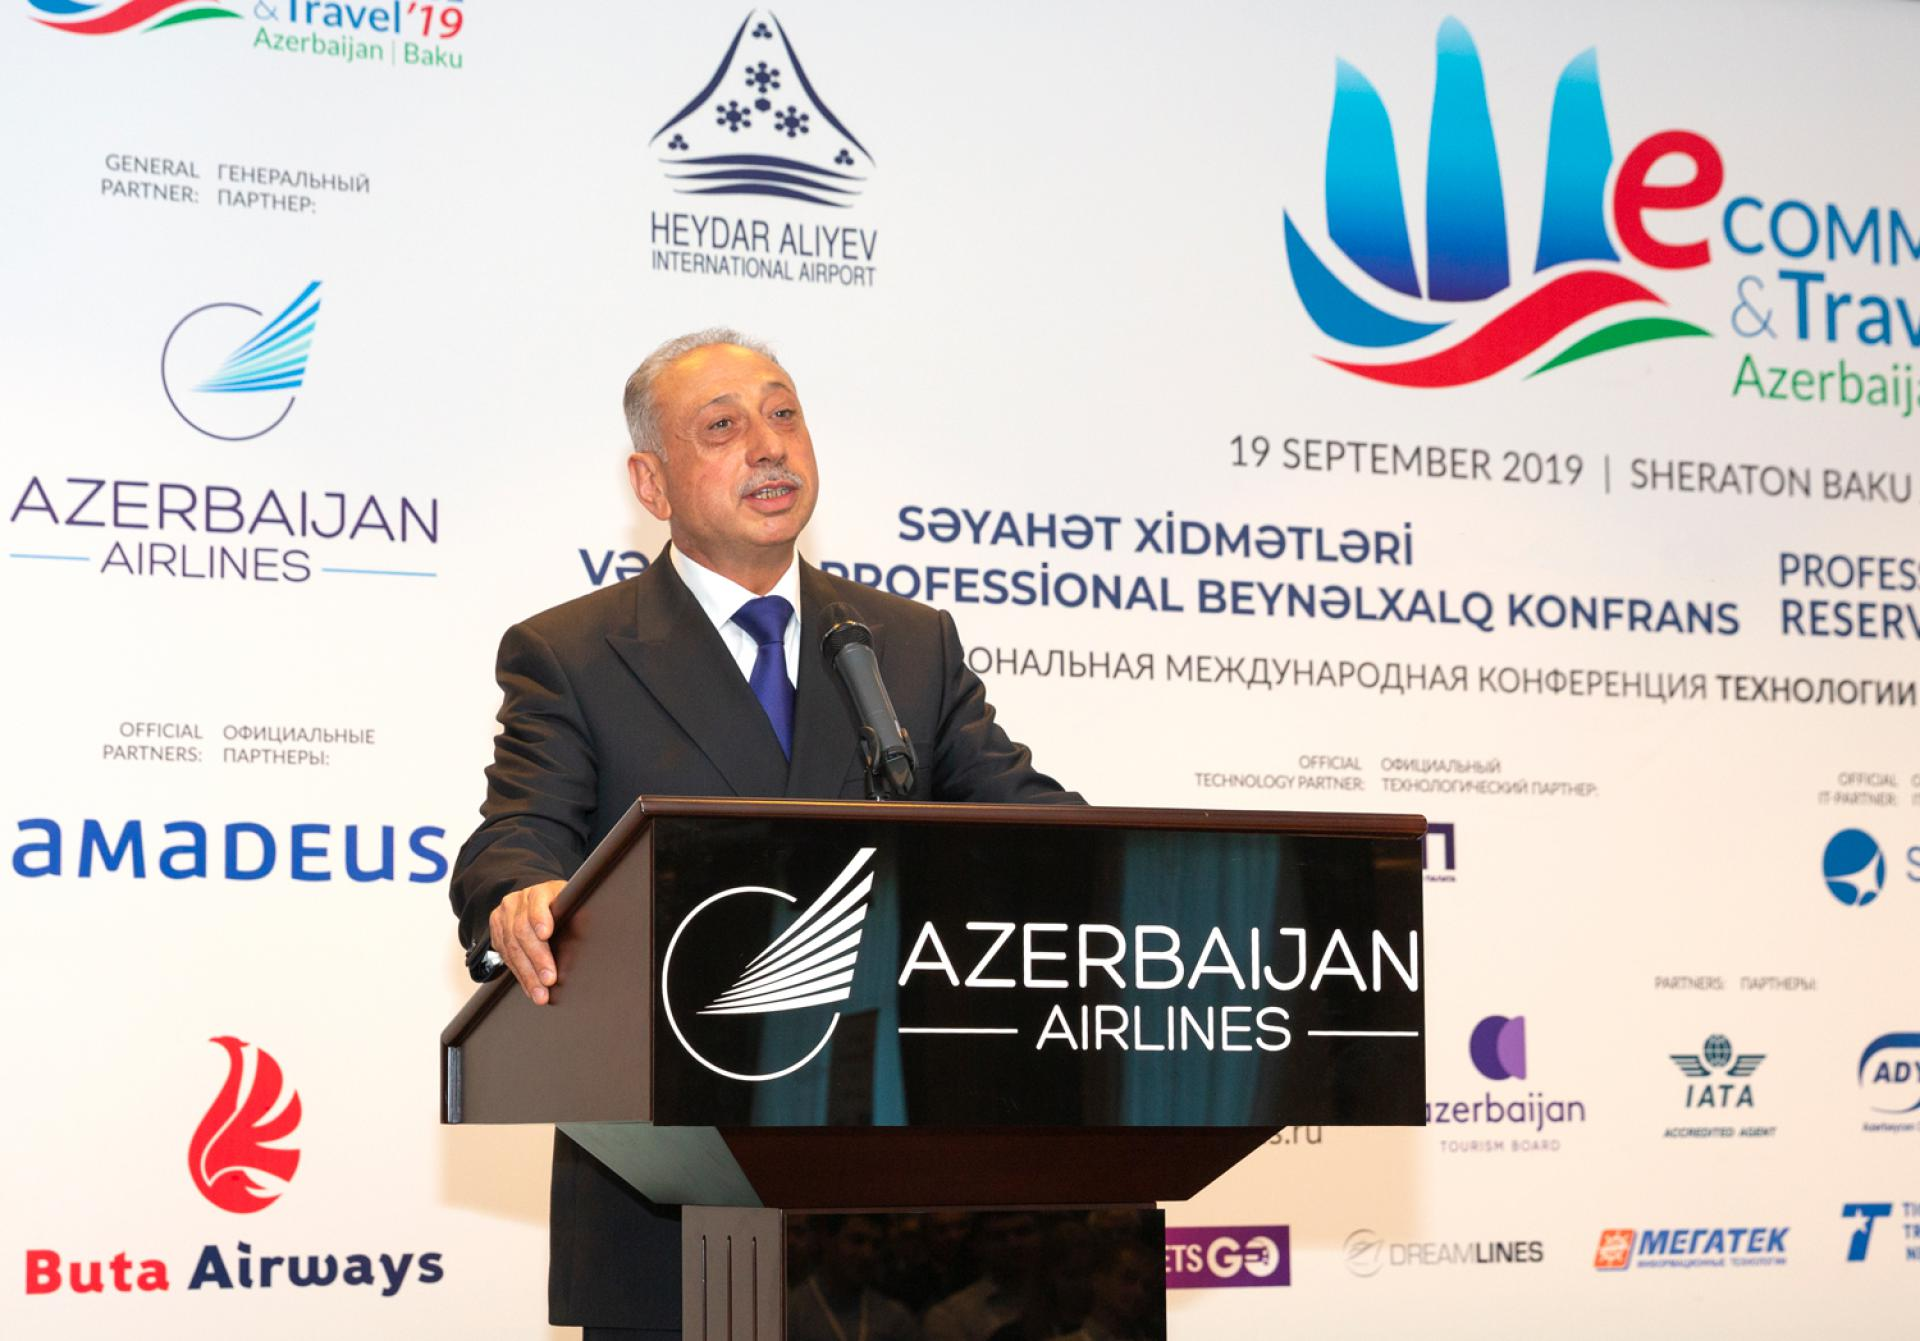 https://www.azal.az/media/2019/09/19/ecommerce_forum__(1).jpg